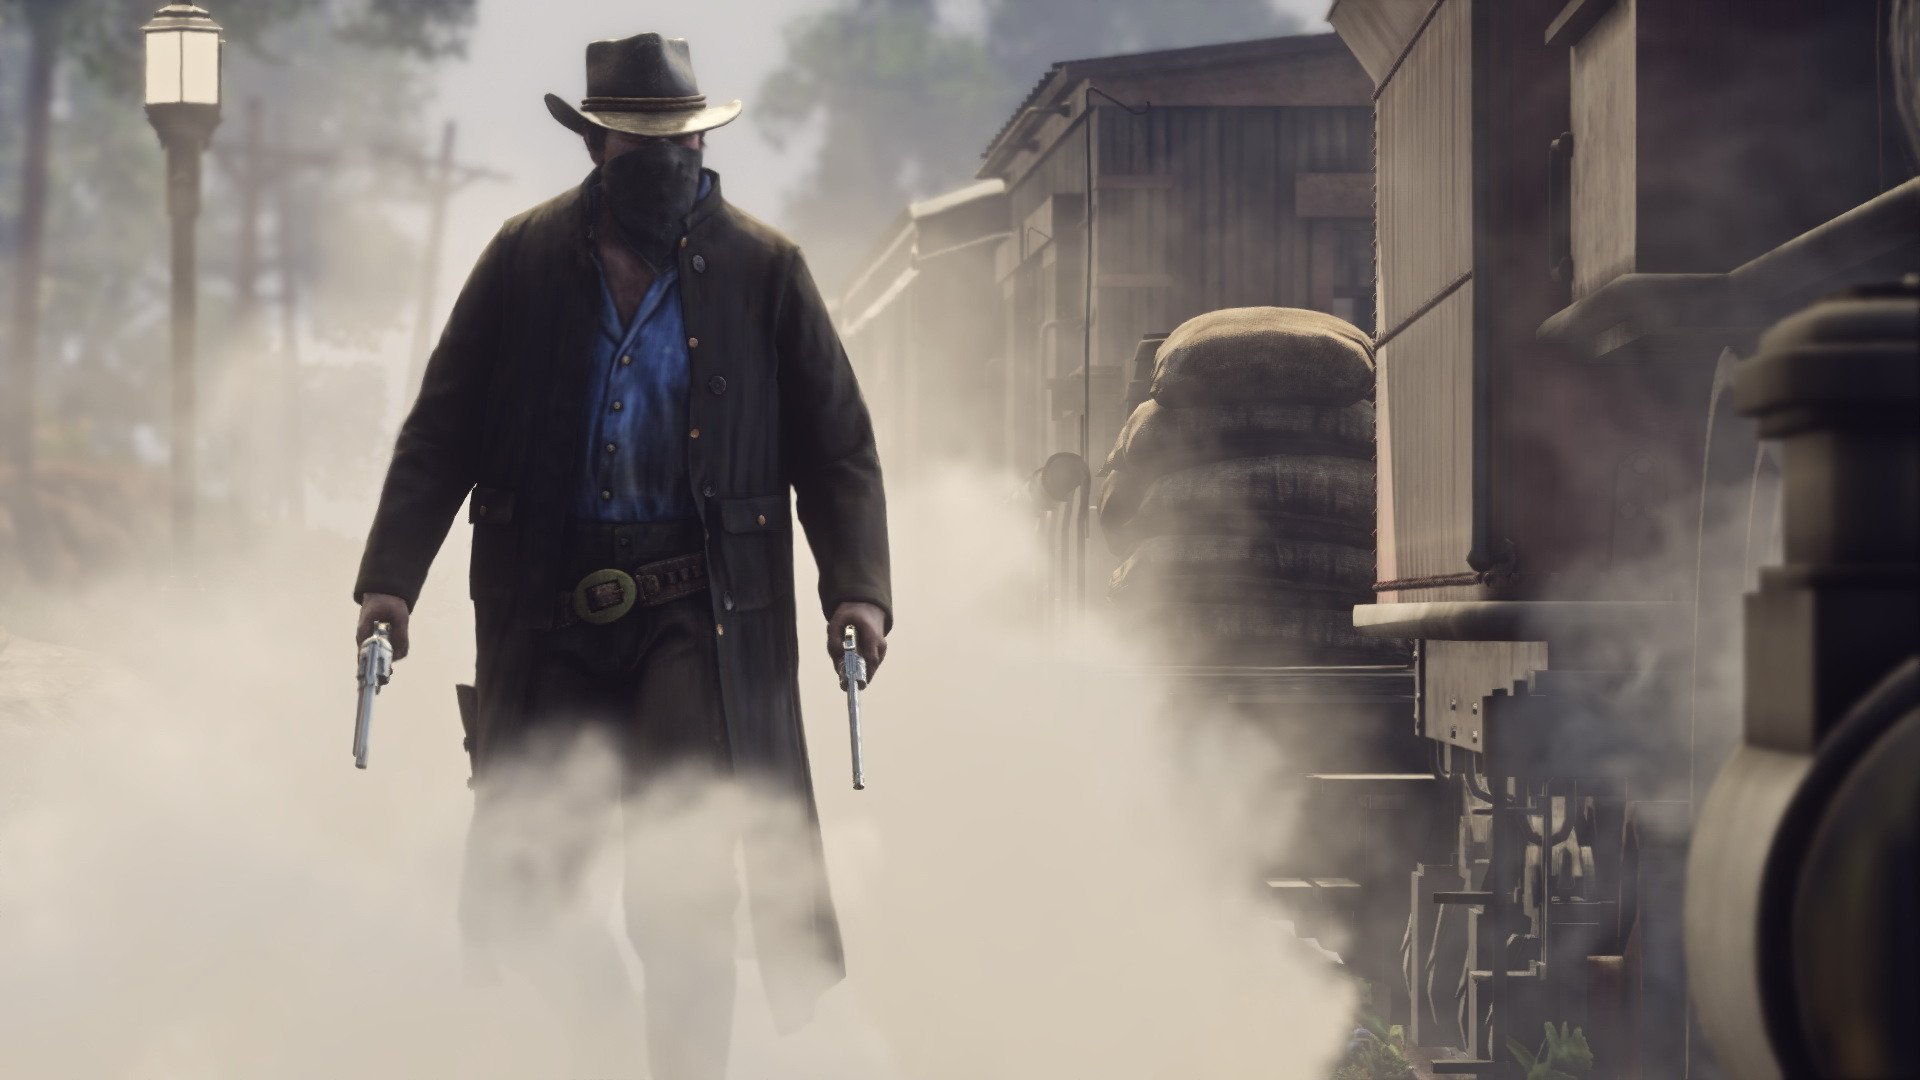 Take-Two says it has no Switch games to announce, but is 'impressed' with the system screenshot